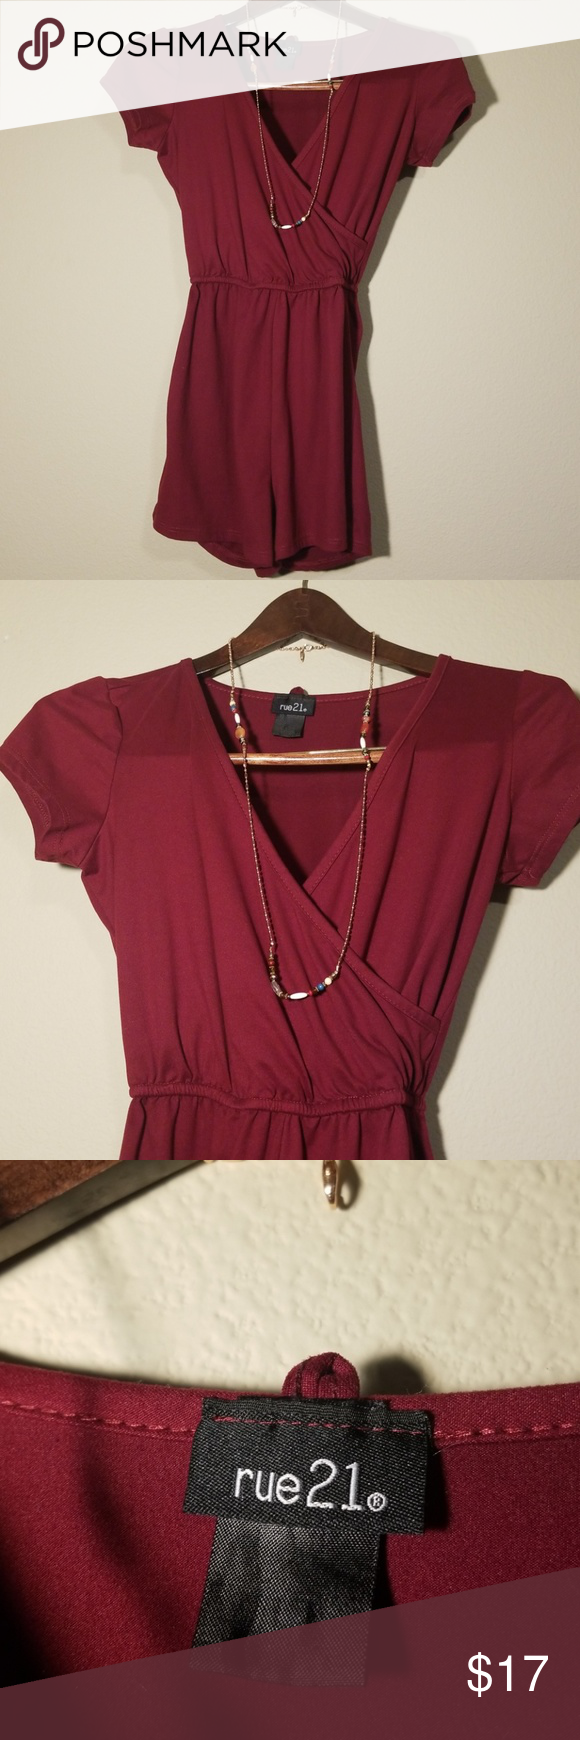 286eea587945 Size extra small. It s in great condition other than the tags having faded.  The necklace is not included. Rue21 Pants Jumpsuits   Rompers